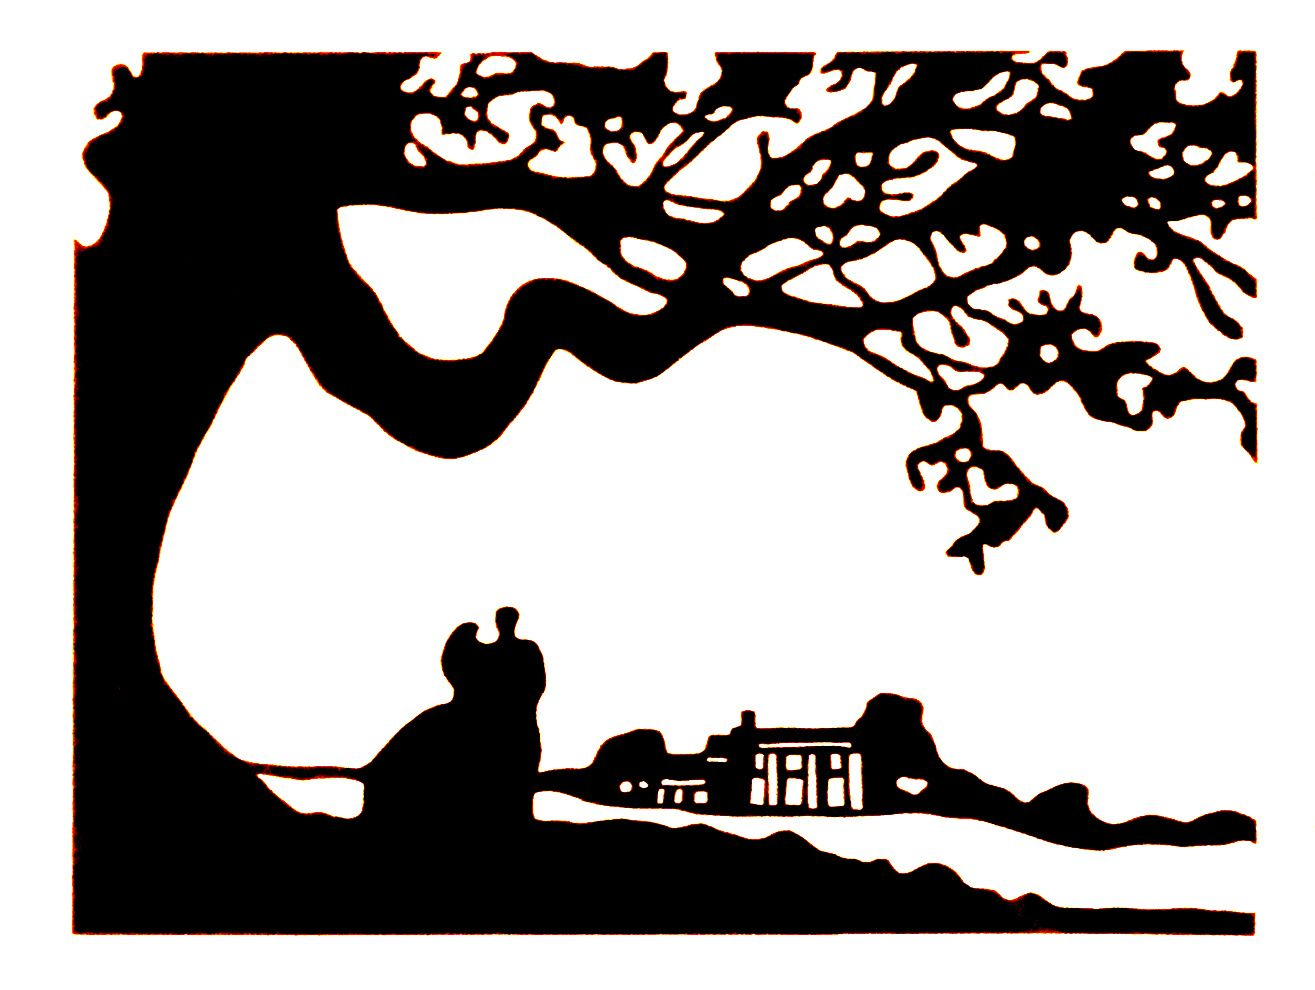 Wind clipart tomorrow. Gone with the silhouettes